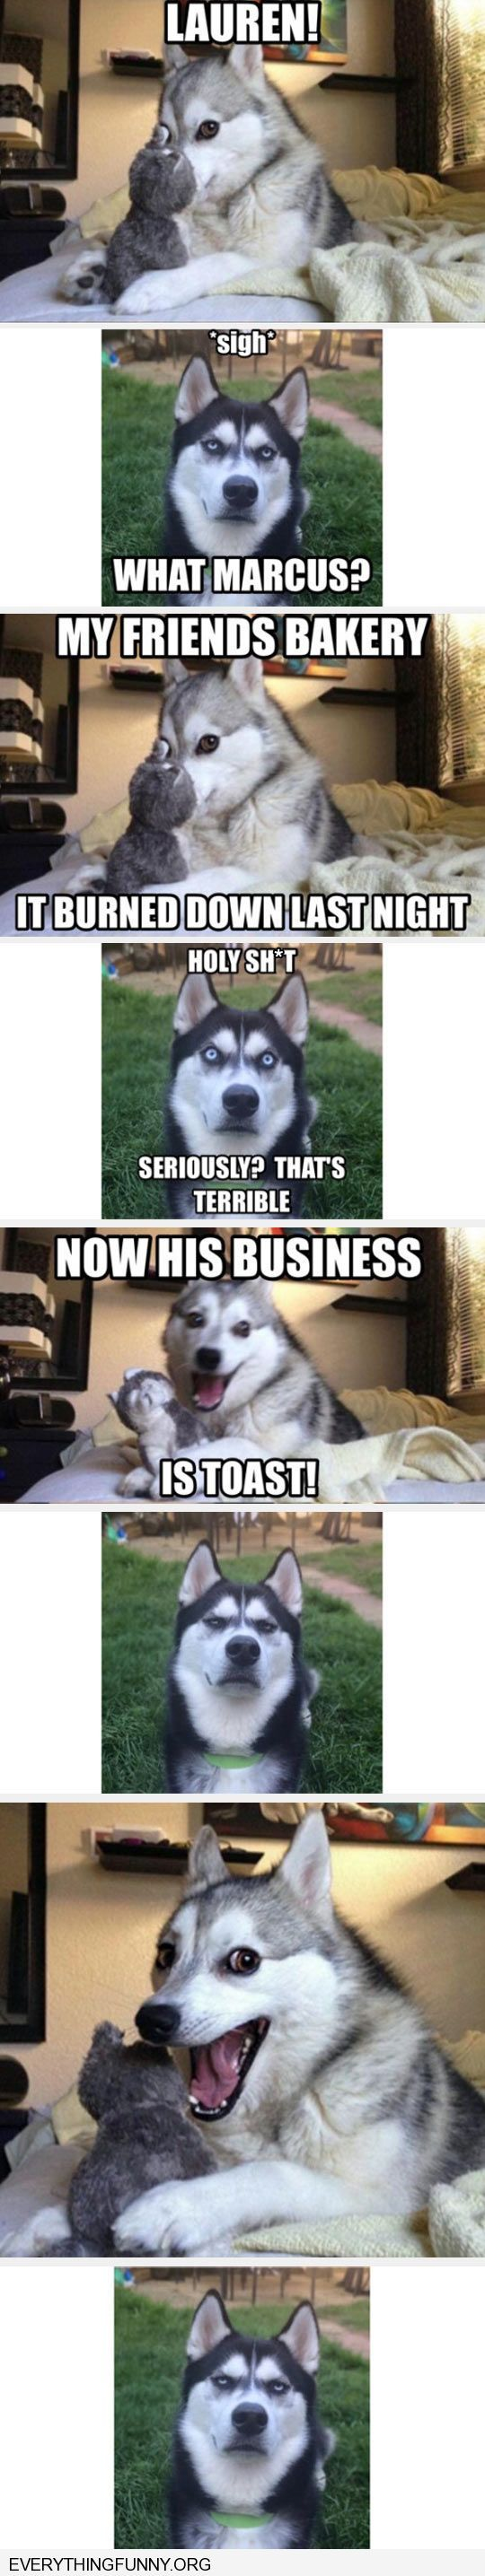 funny dog joke meme with angry husky | Dogs, Dogs, Dogs ...